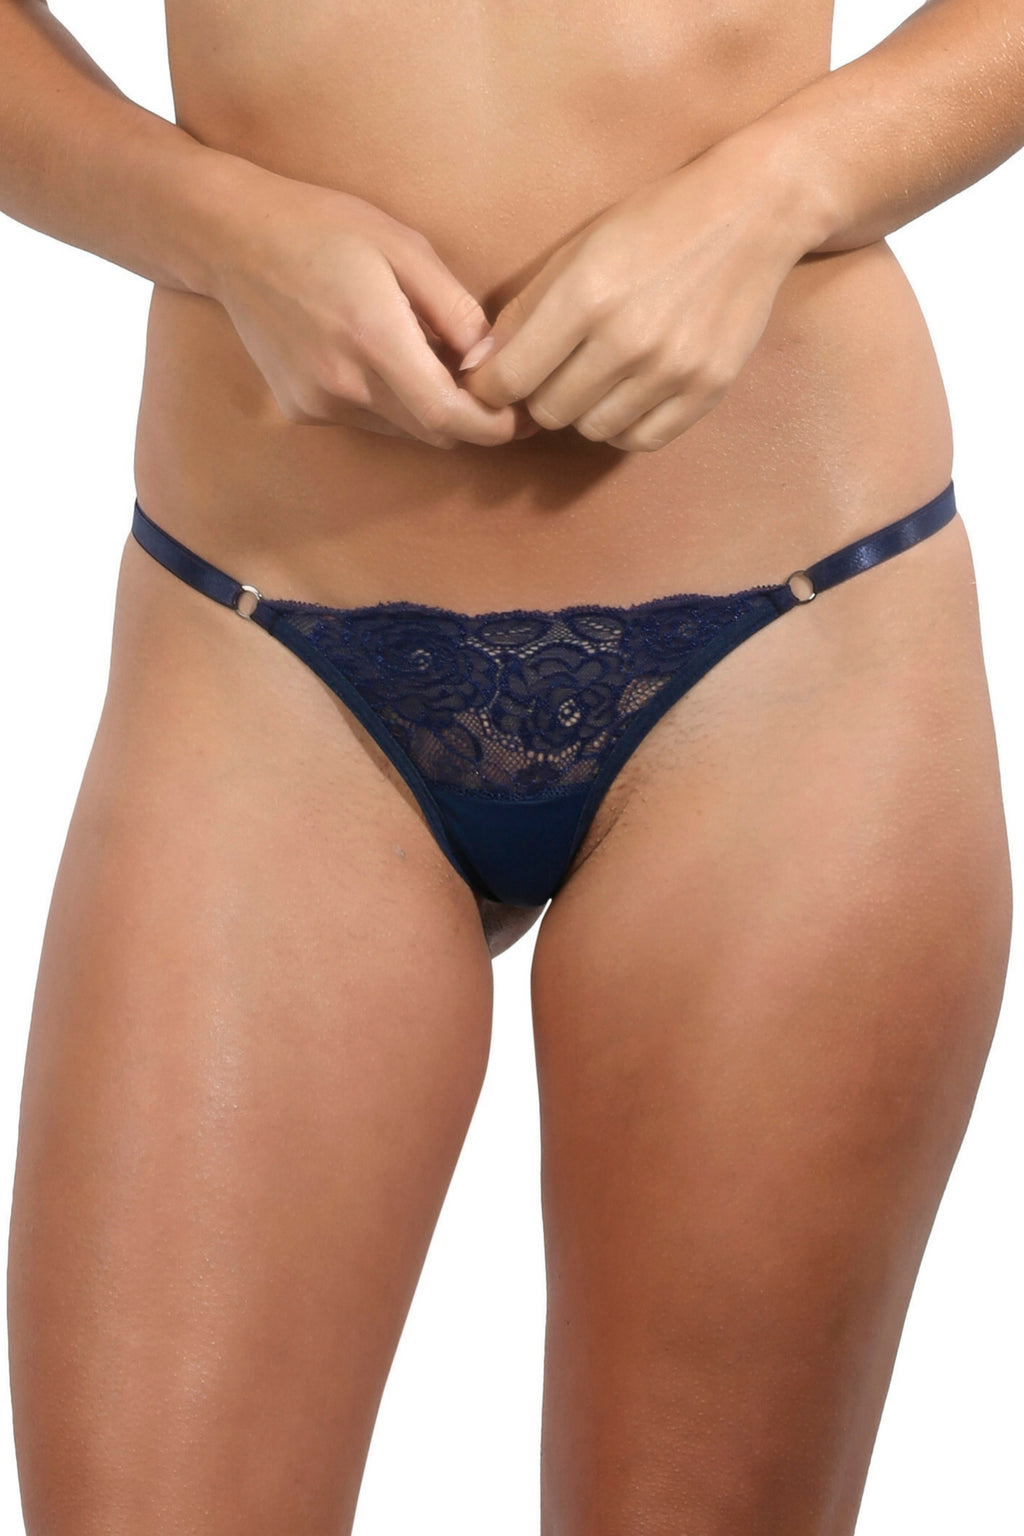 Navy Lace Thong String Underwear Women's Brazilian Panties